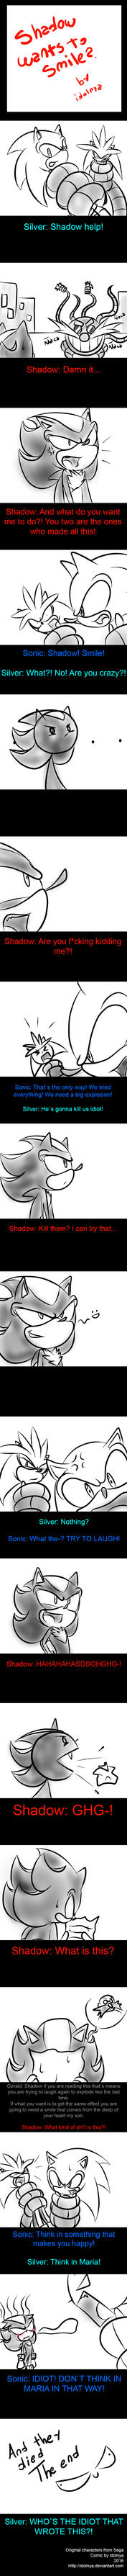 Shadow Wants To Smile? by idolnya